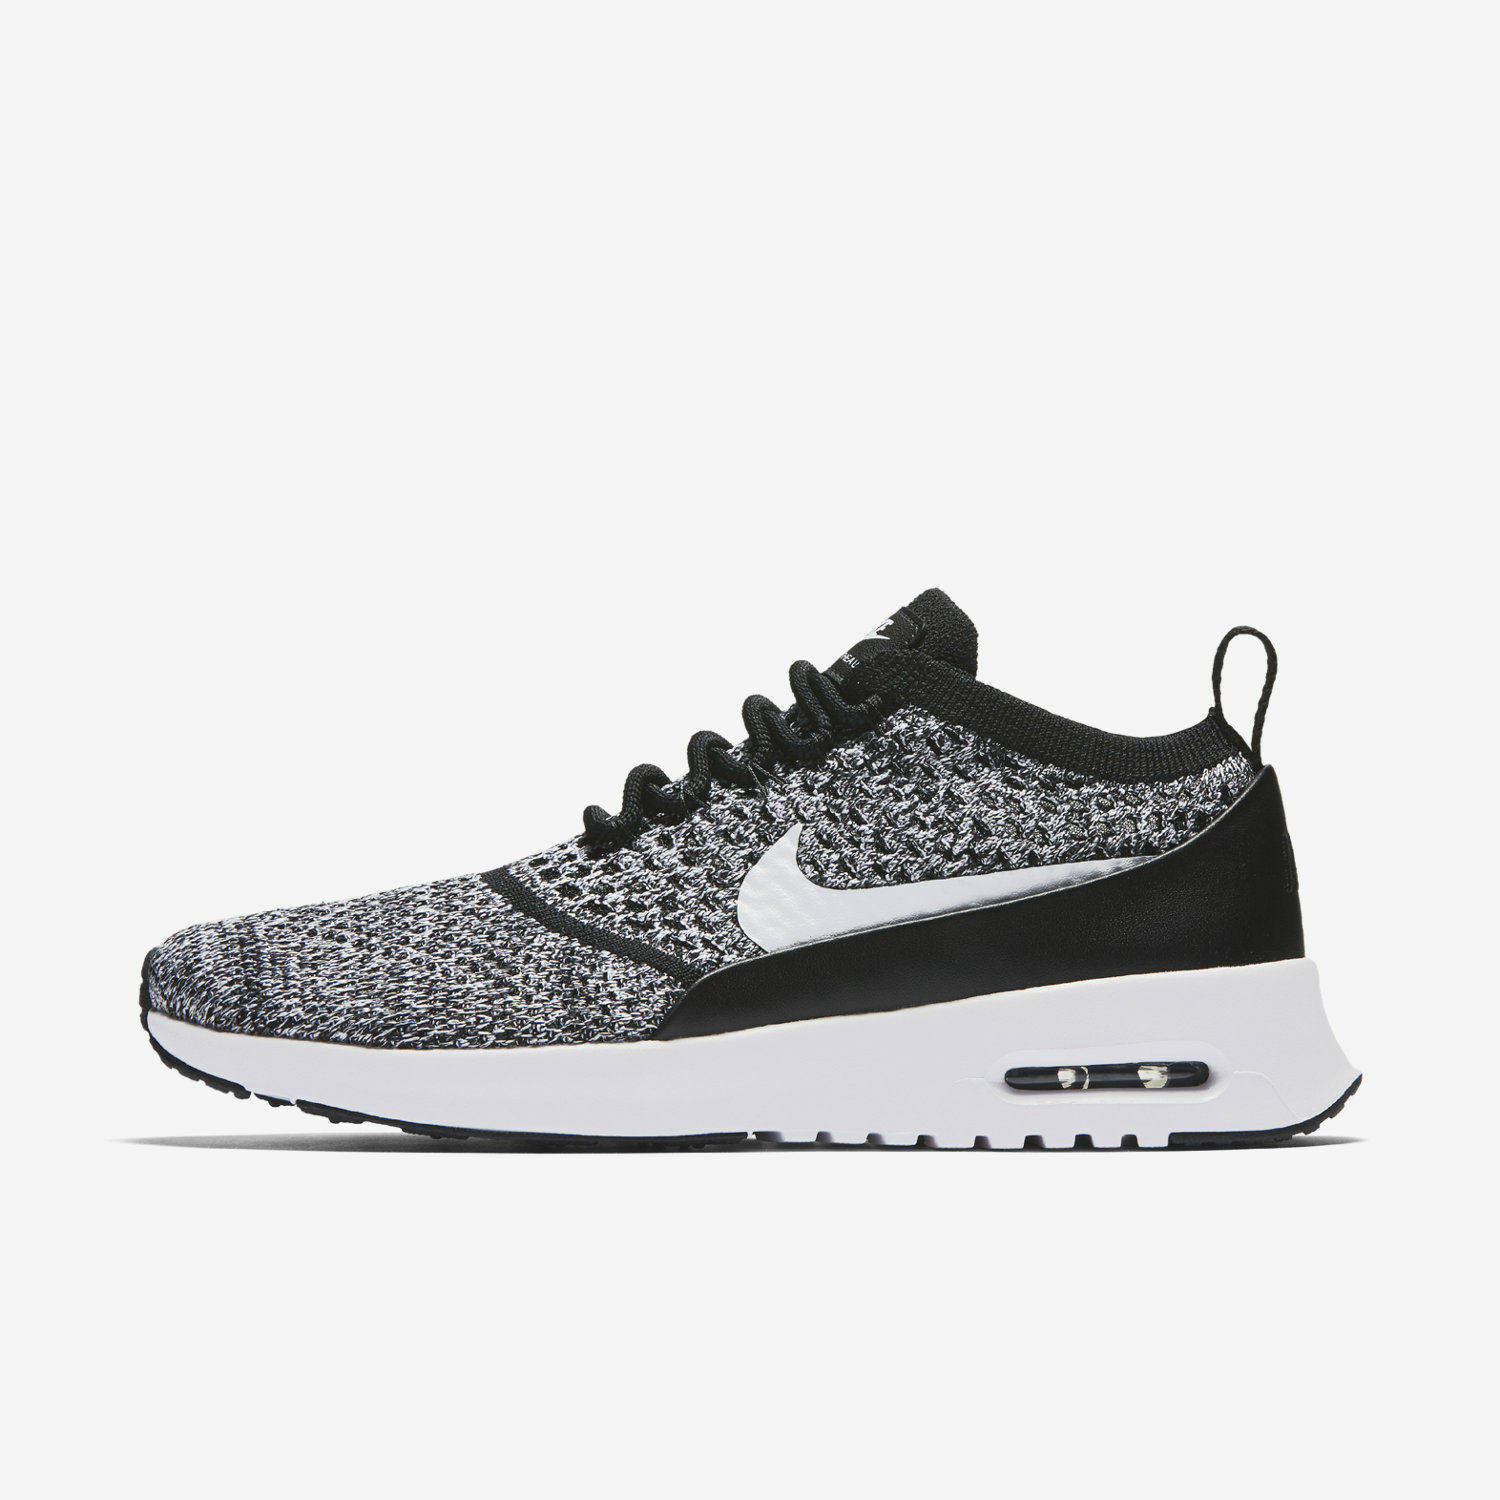 Nike WOMEN'S Air Max Thea Ultra FLYKNIT OREO SIZE 9.5 BRAND NEW